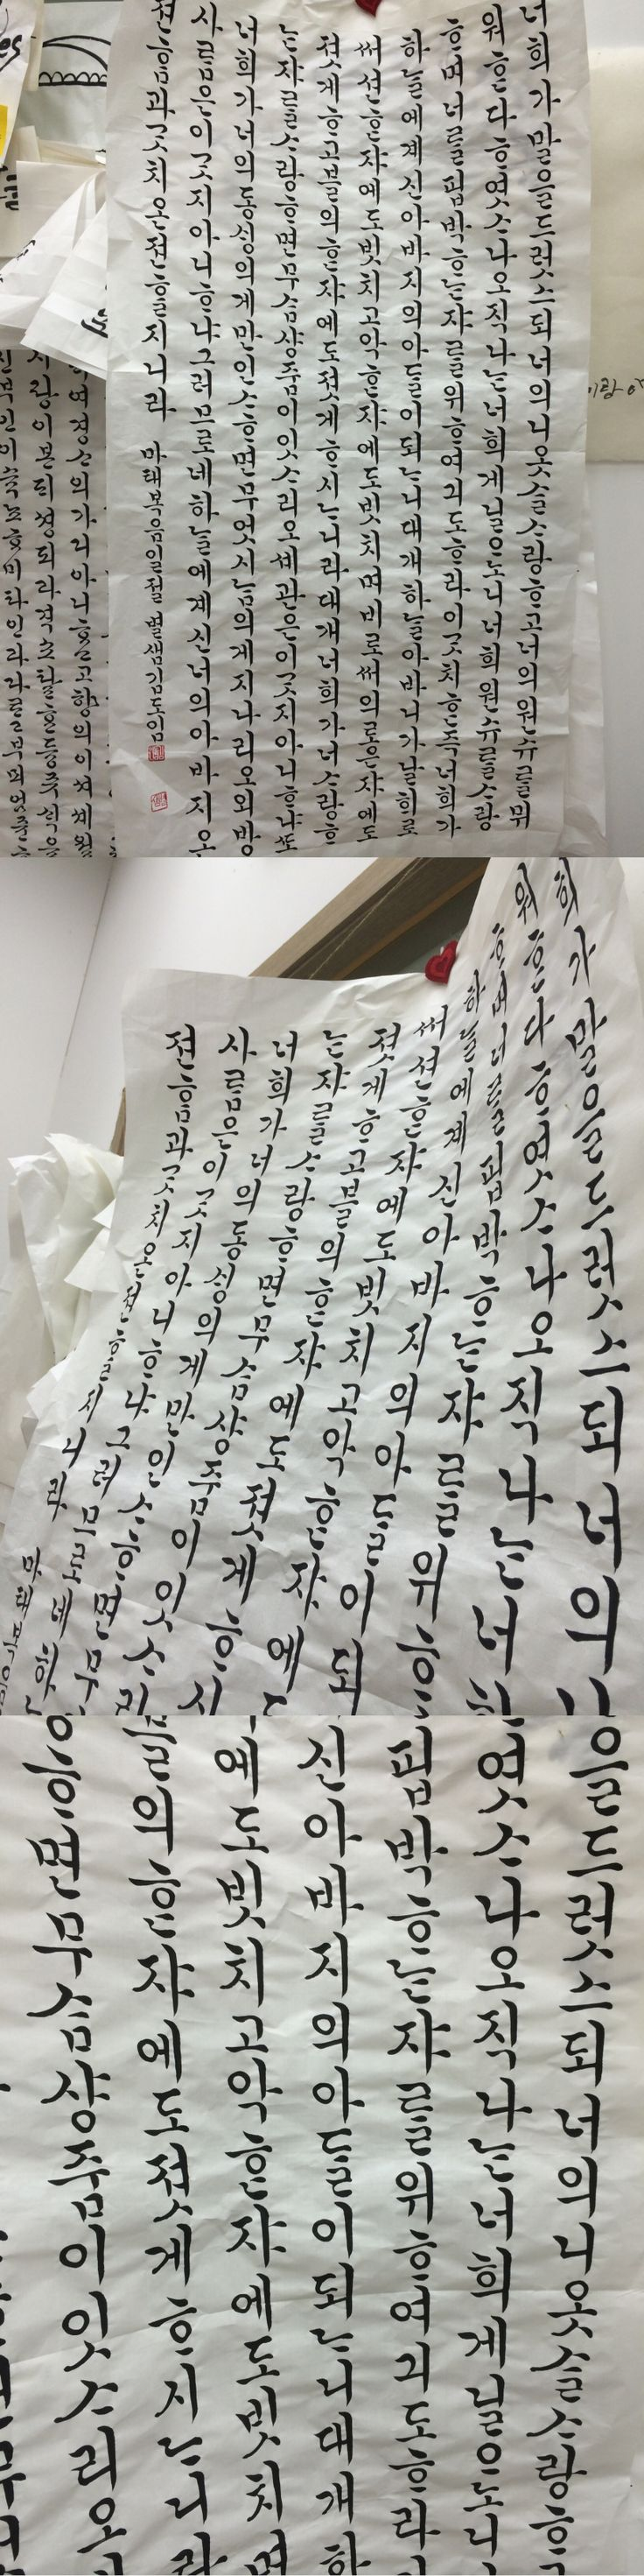 calligraphy by Byulsam - Matthew5:43~48 the court style of Hangul calligraphy